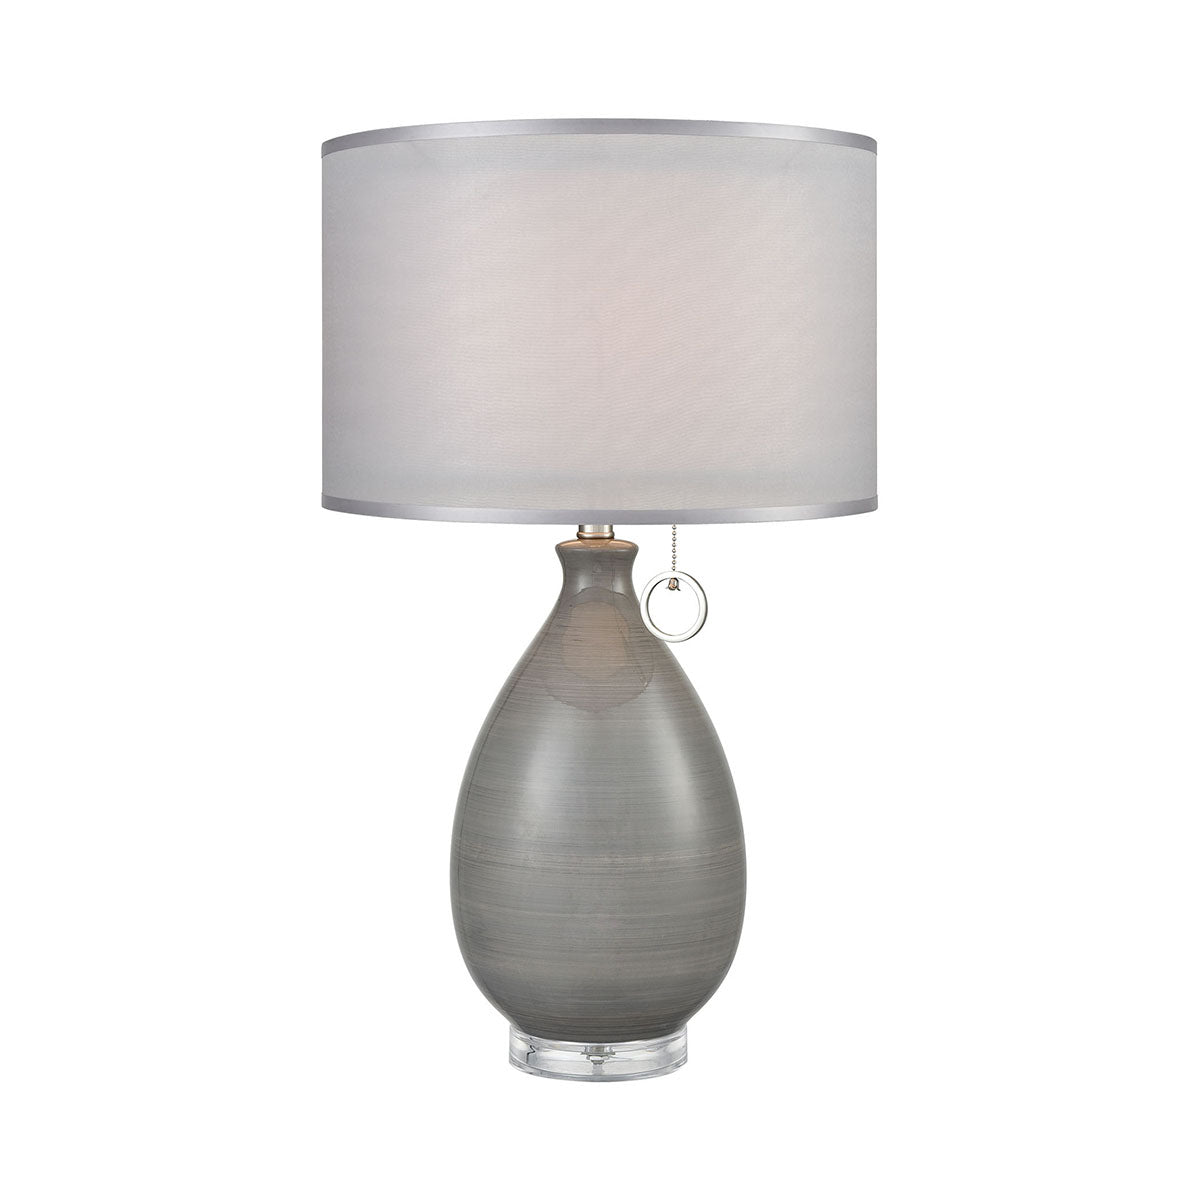 Clothilde Grey Table Lamp